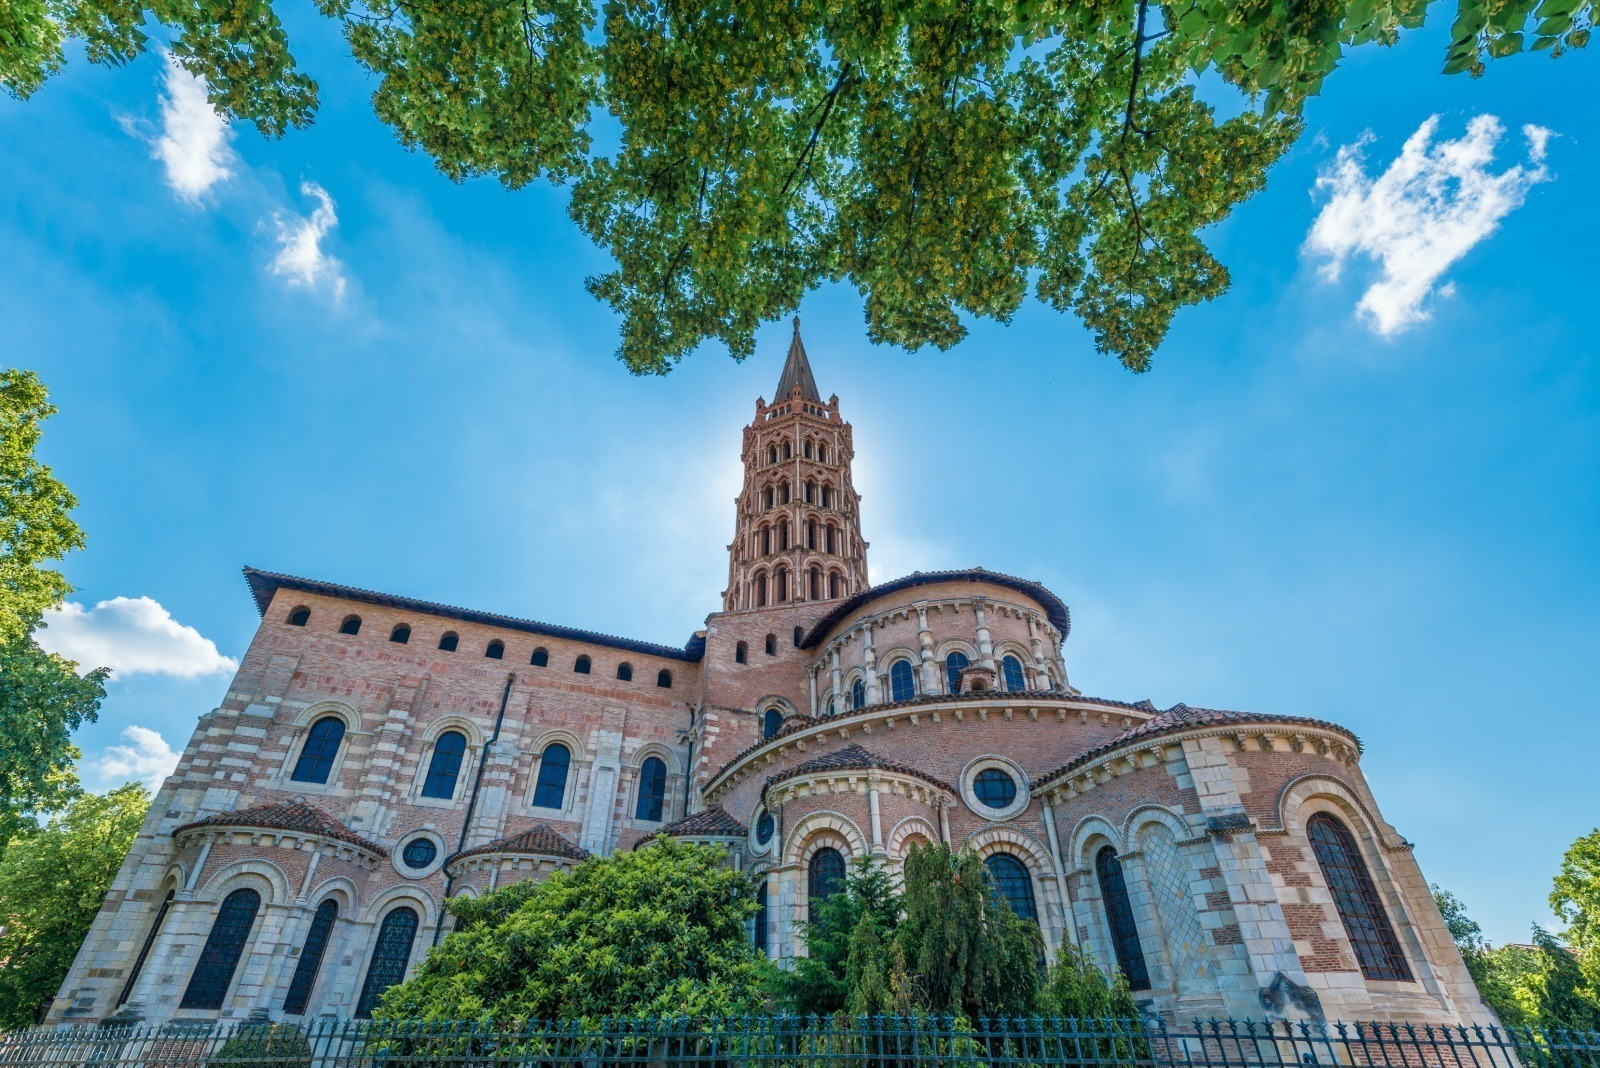 Road trip: Toulouse and the architecture of southwest France